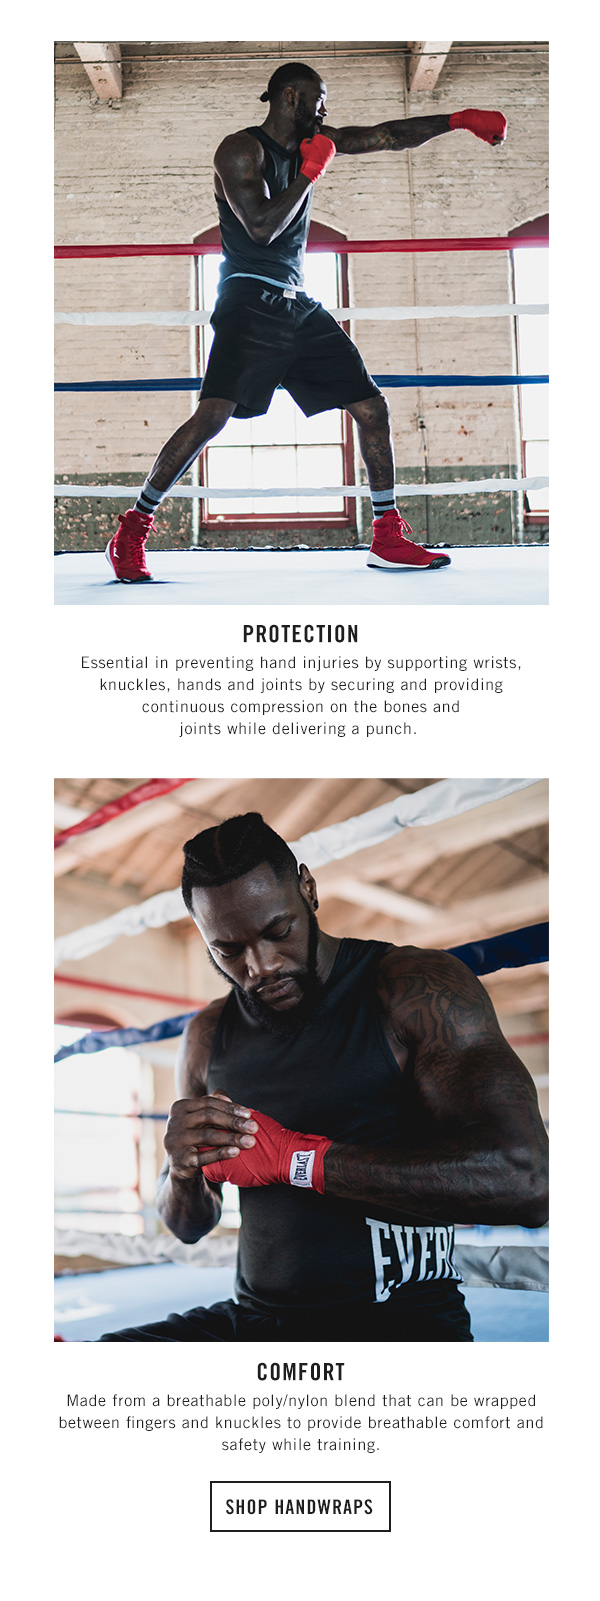 Essential in preventing hand injuries by supporting wrists, knuckles, hands and joints by securing and providing continuous compression on the bones and joints while delivering a punch.  Made from a breathable poly/nylon blend that can be wrapped between fingers and knuckles to provide breathable comfort and safety while training | Everlast.com